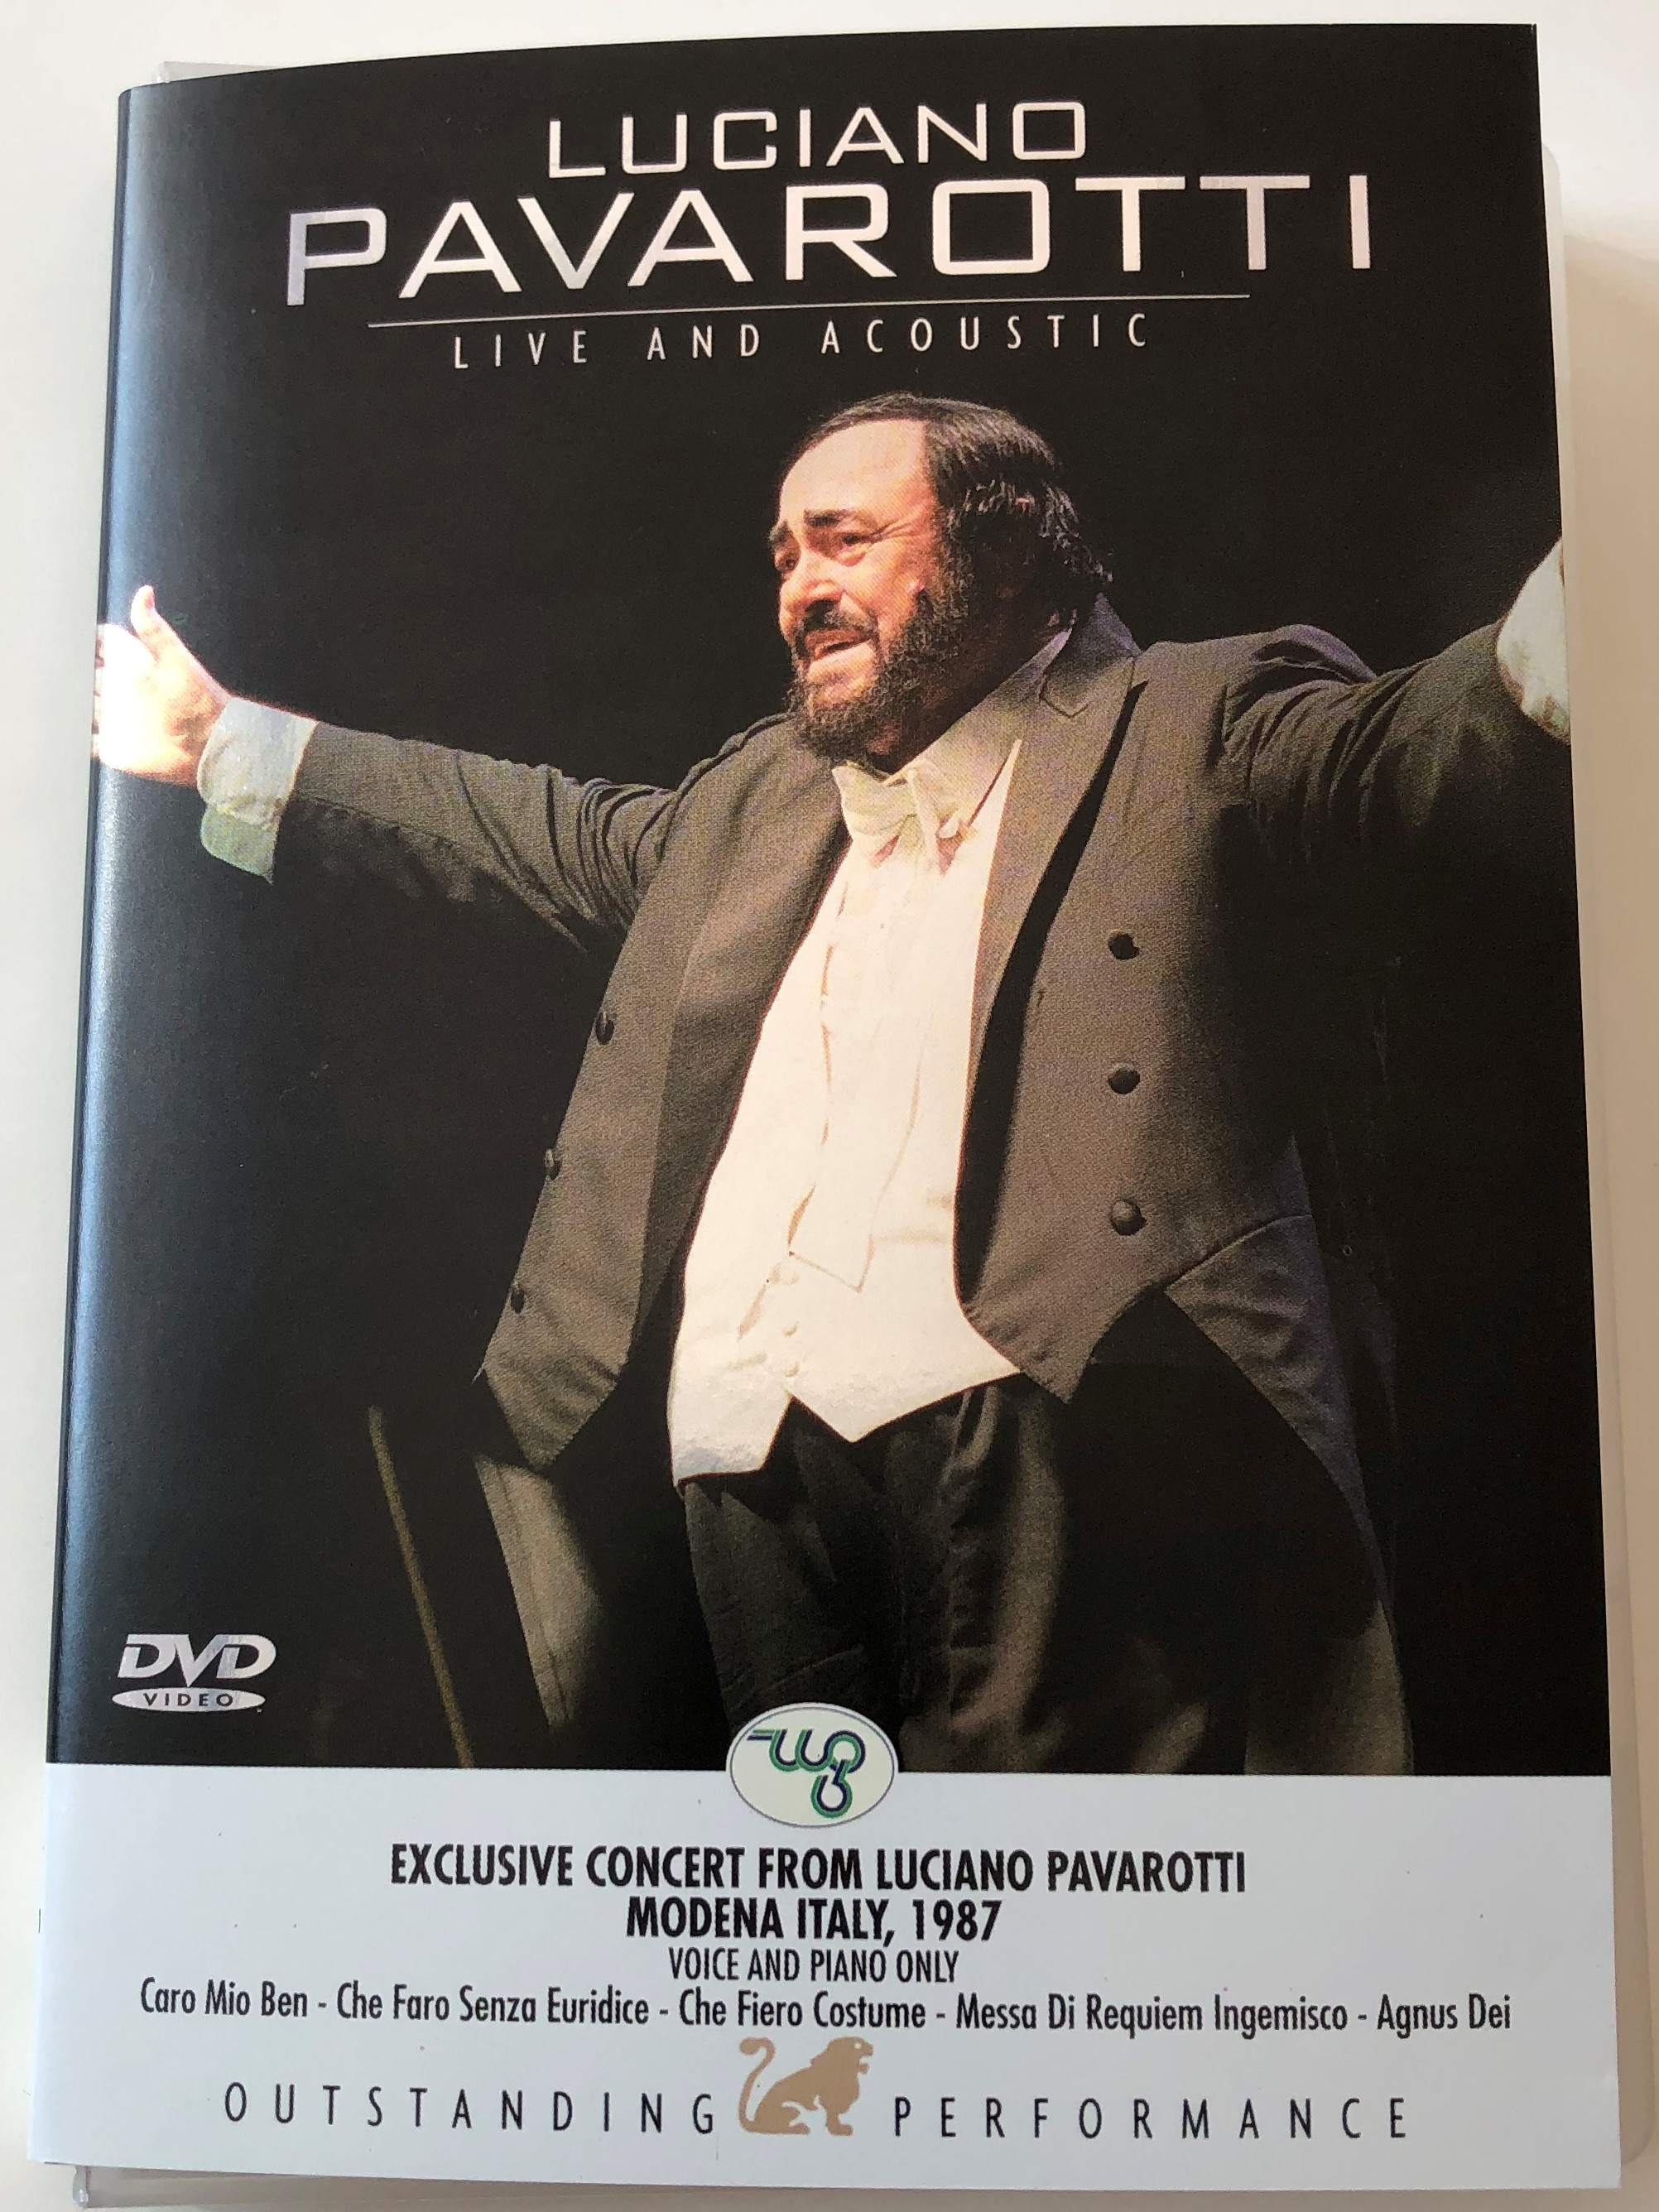 luciano-pavarotti-live-and-acoustic-dvd-2005-exclusive-concert-modena-italy-1.jpg